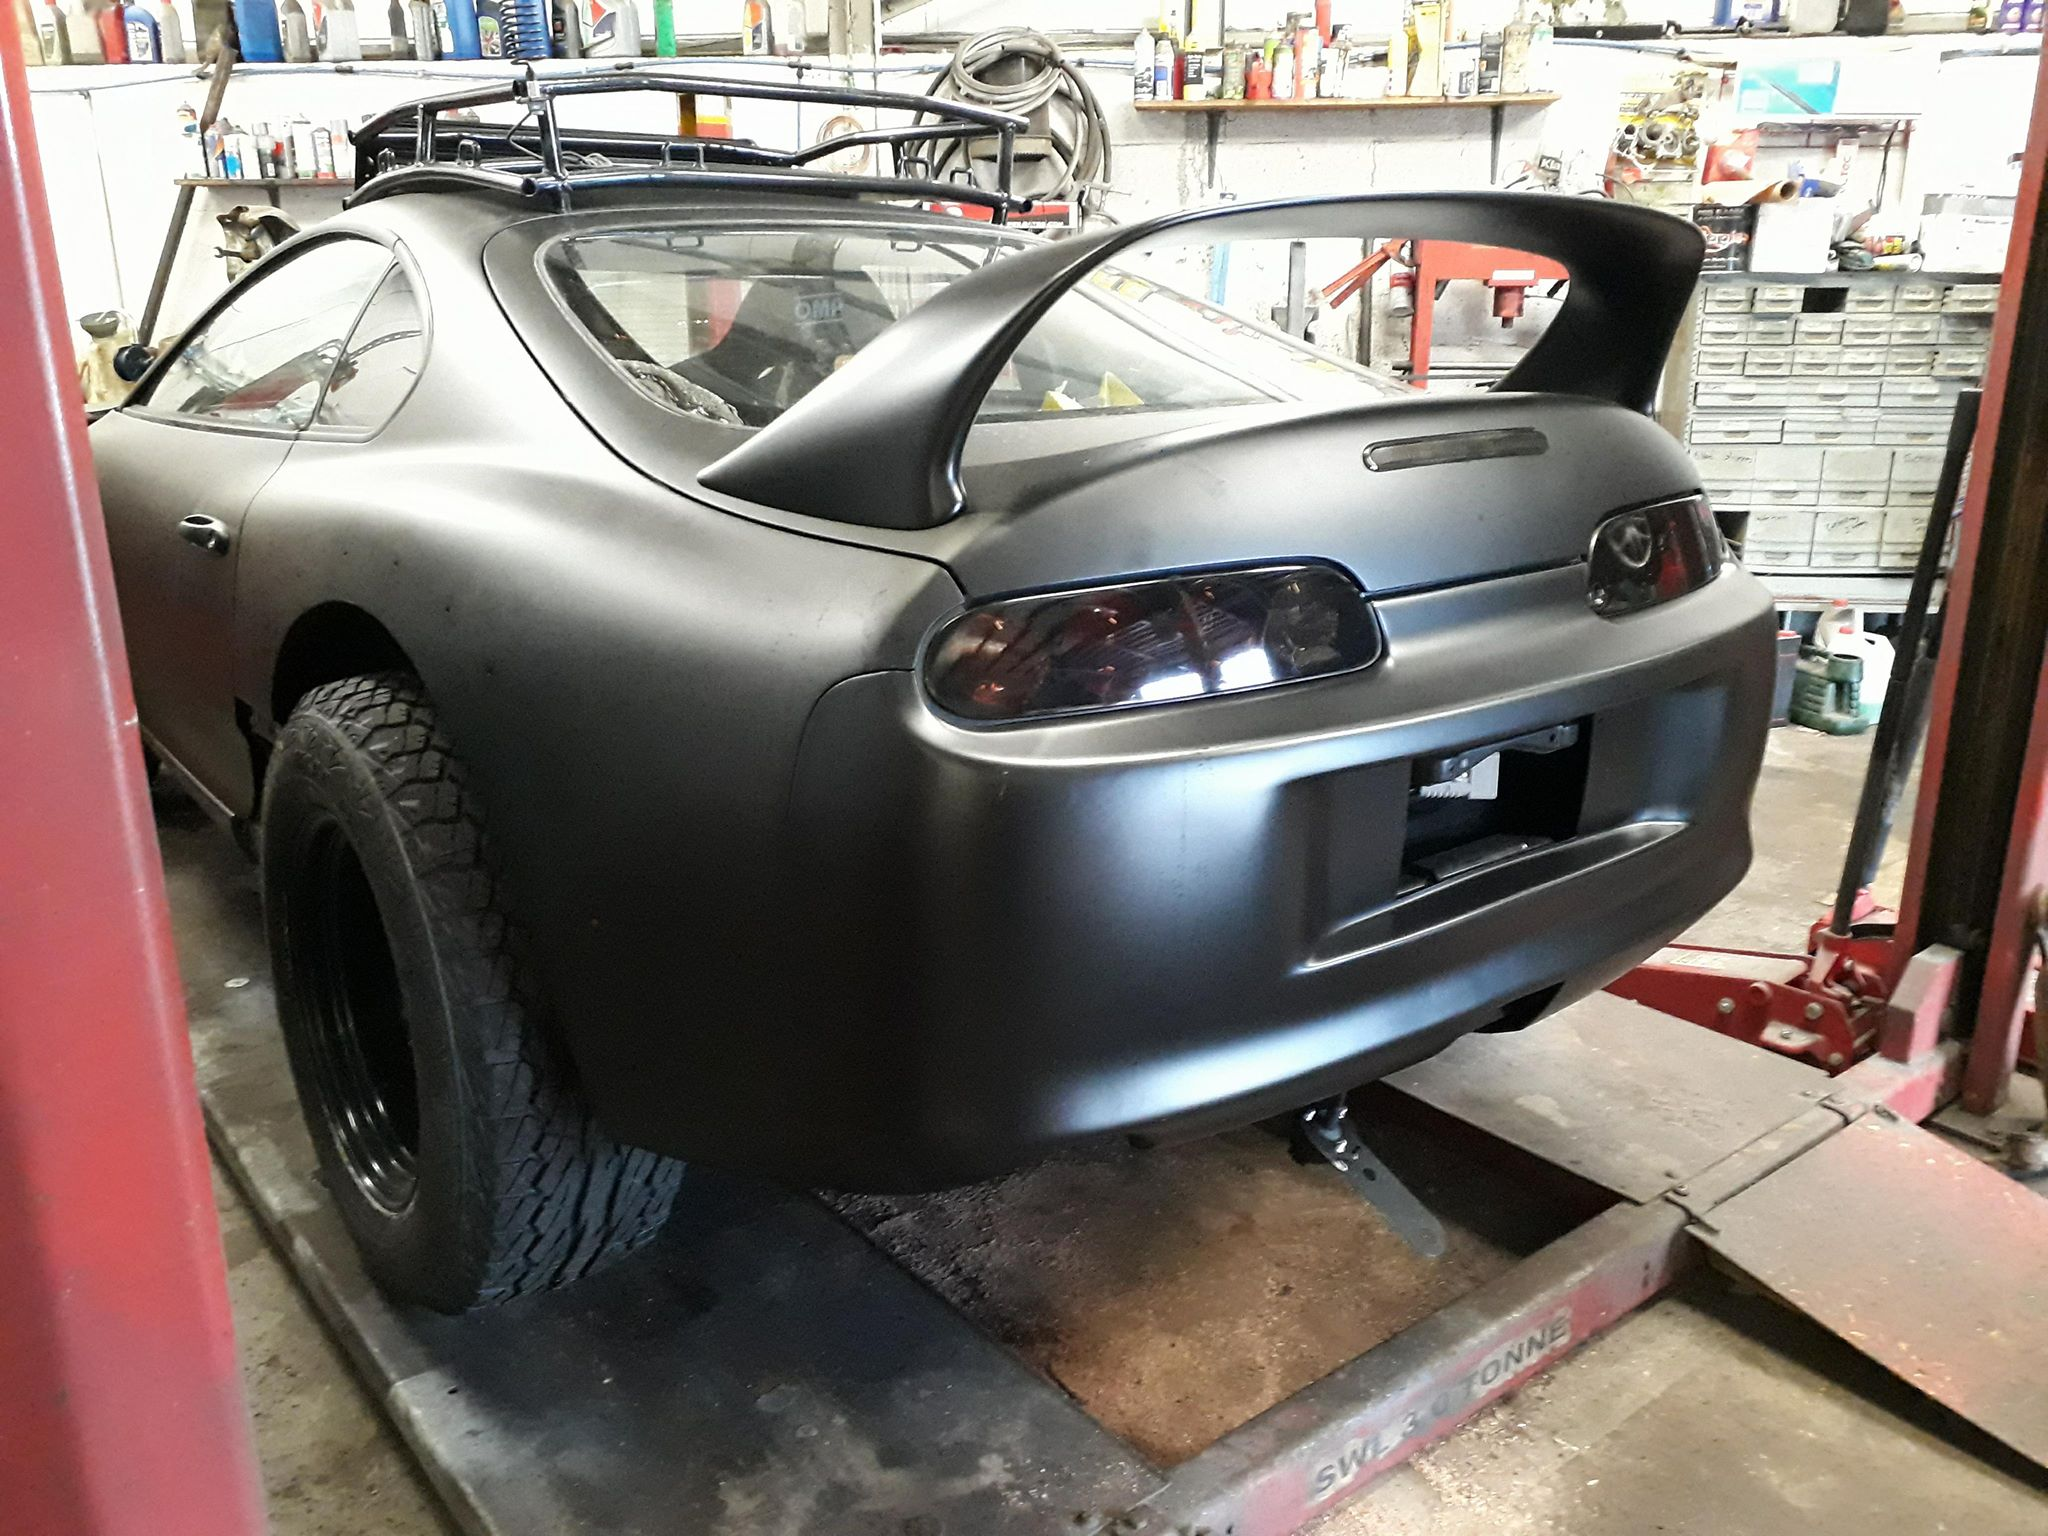 Toyota-Supra-Cummins-engine-swap-10